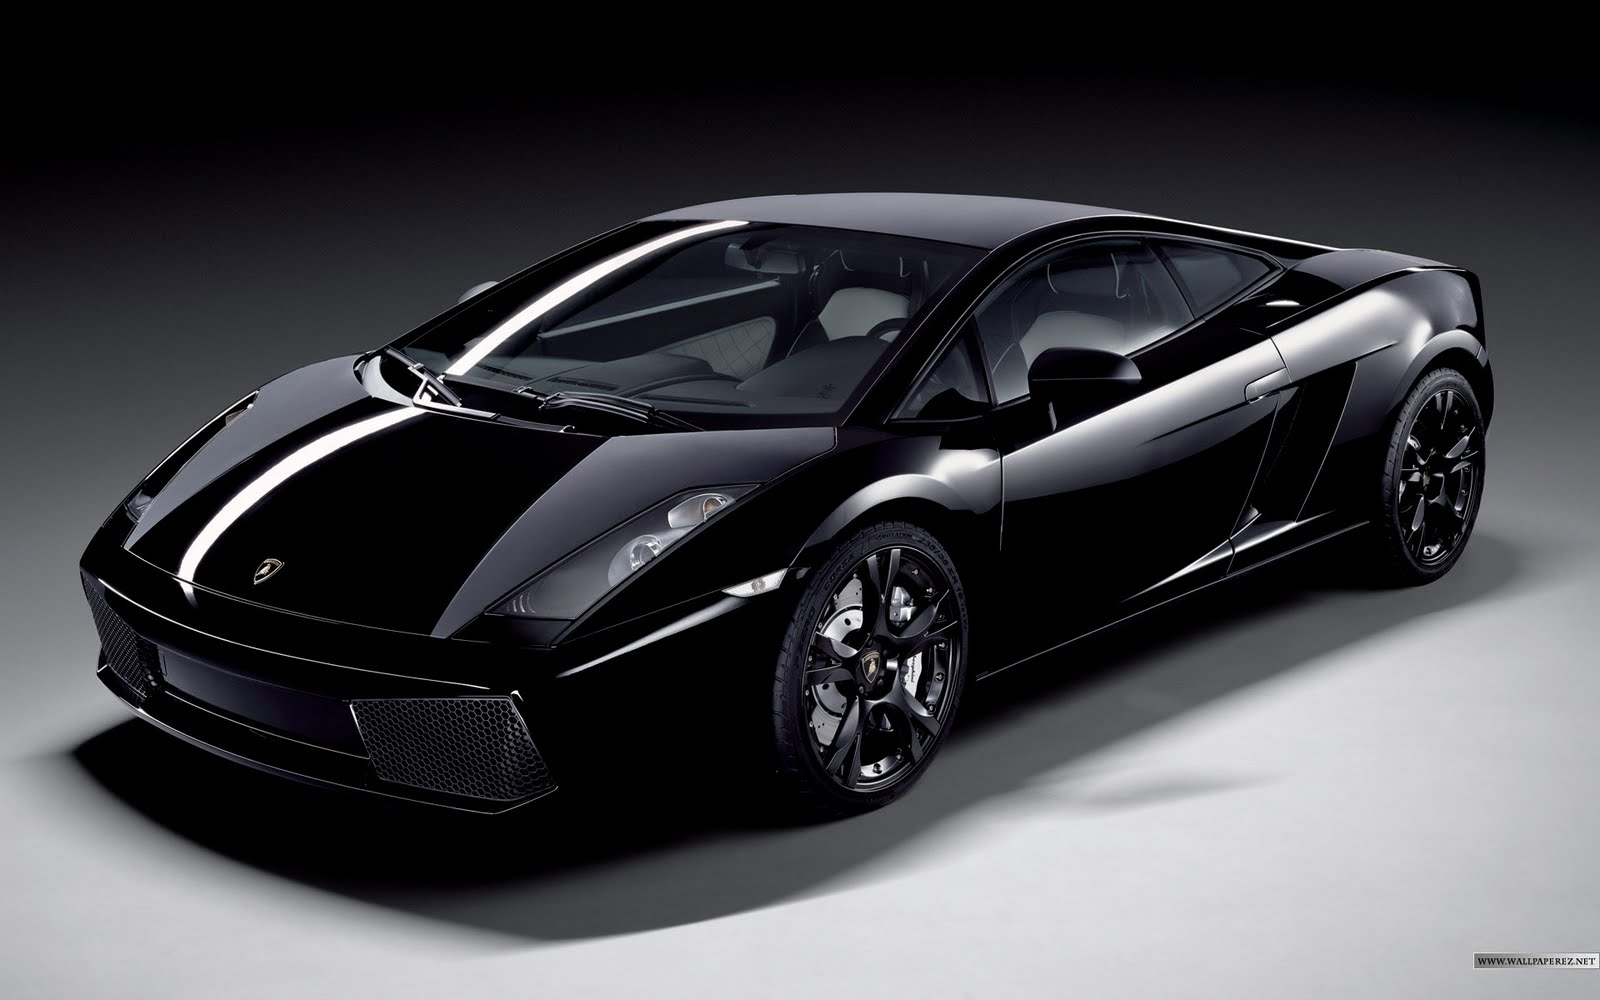 2011 ford gt40 for sale - New Lamborghini Gallardo 2011 Car Under 500 Dollars